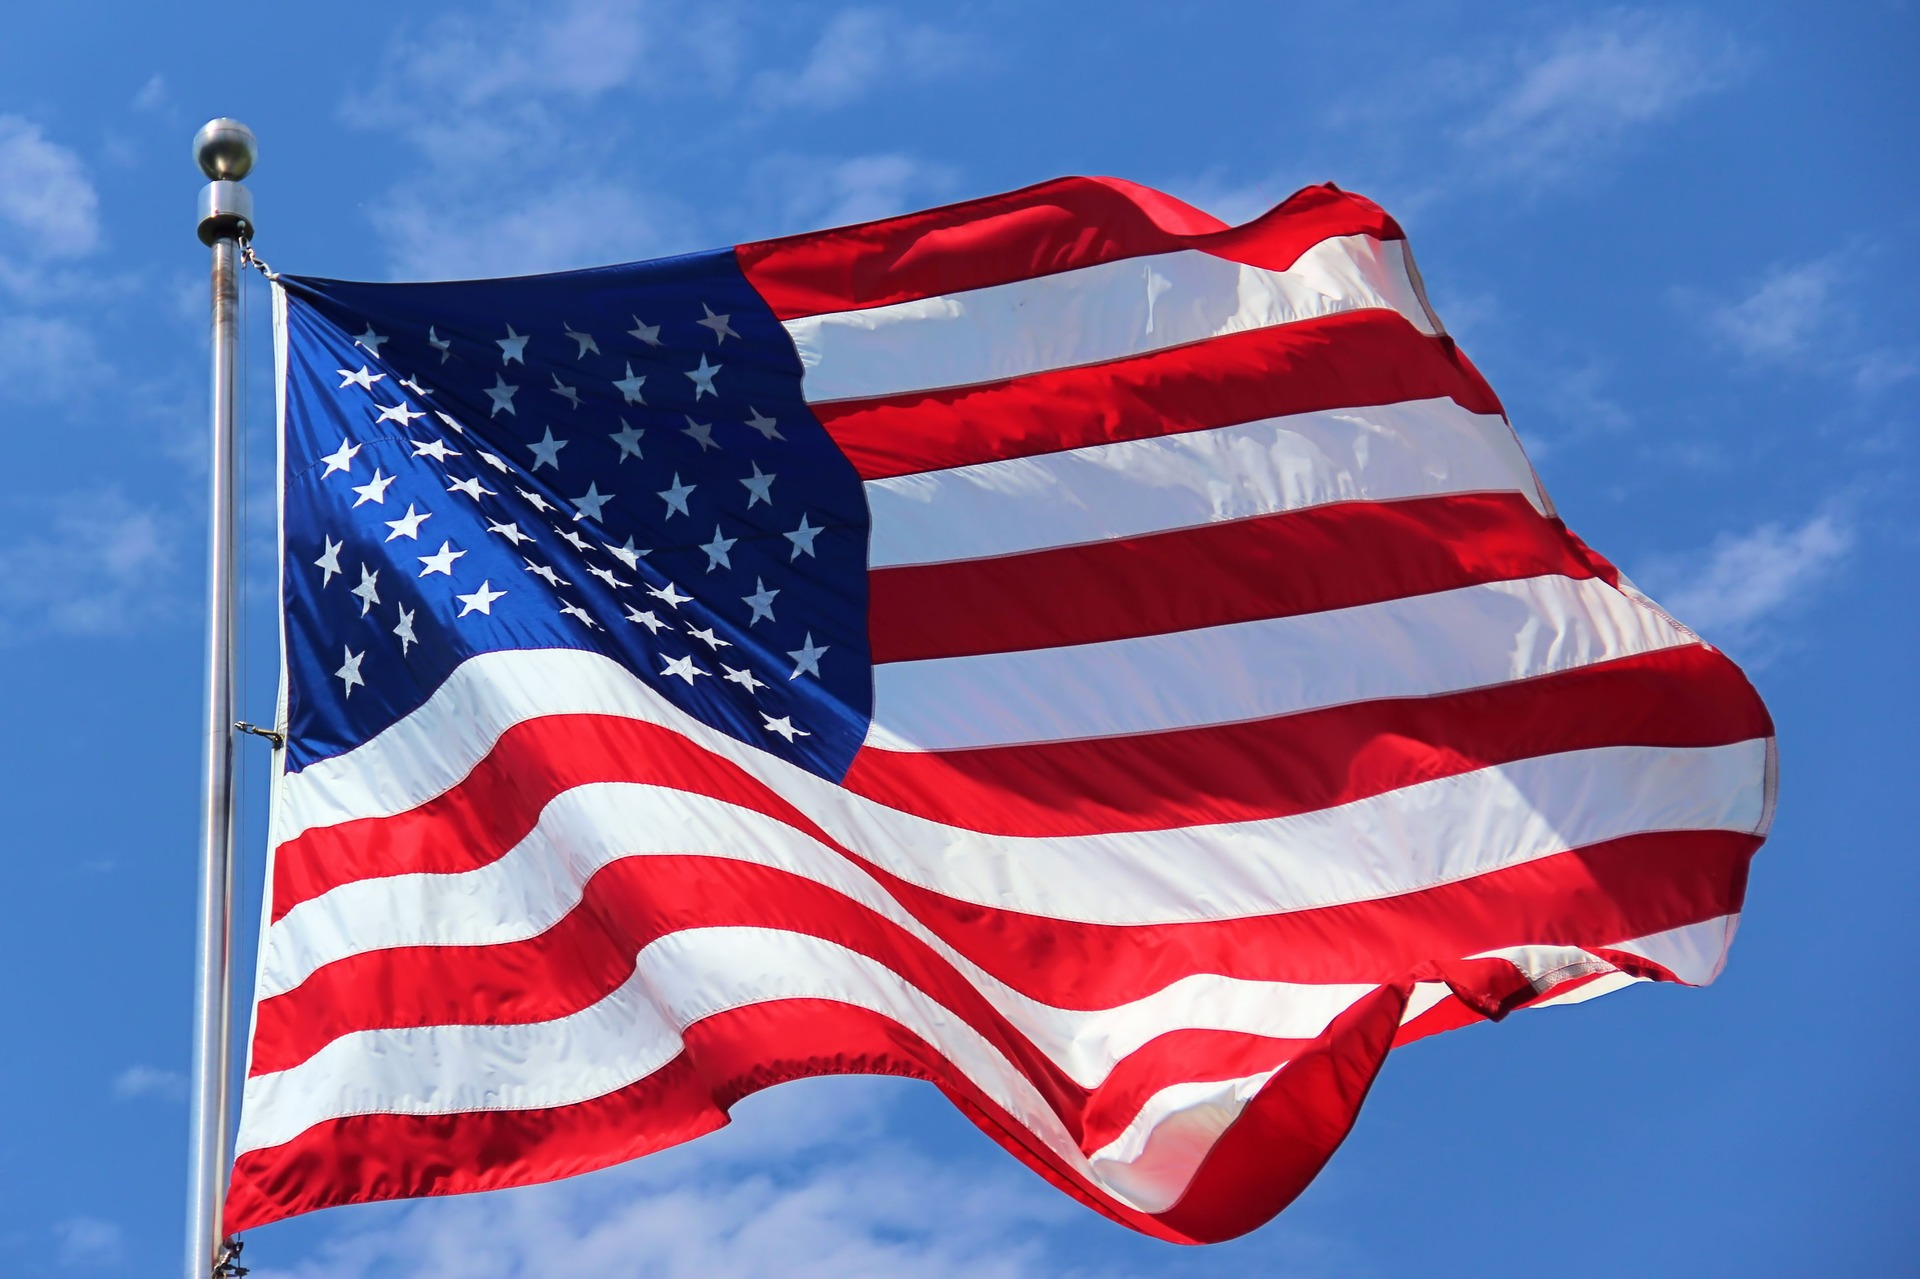 american flag waving against a blue sky